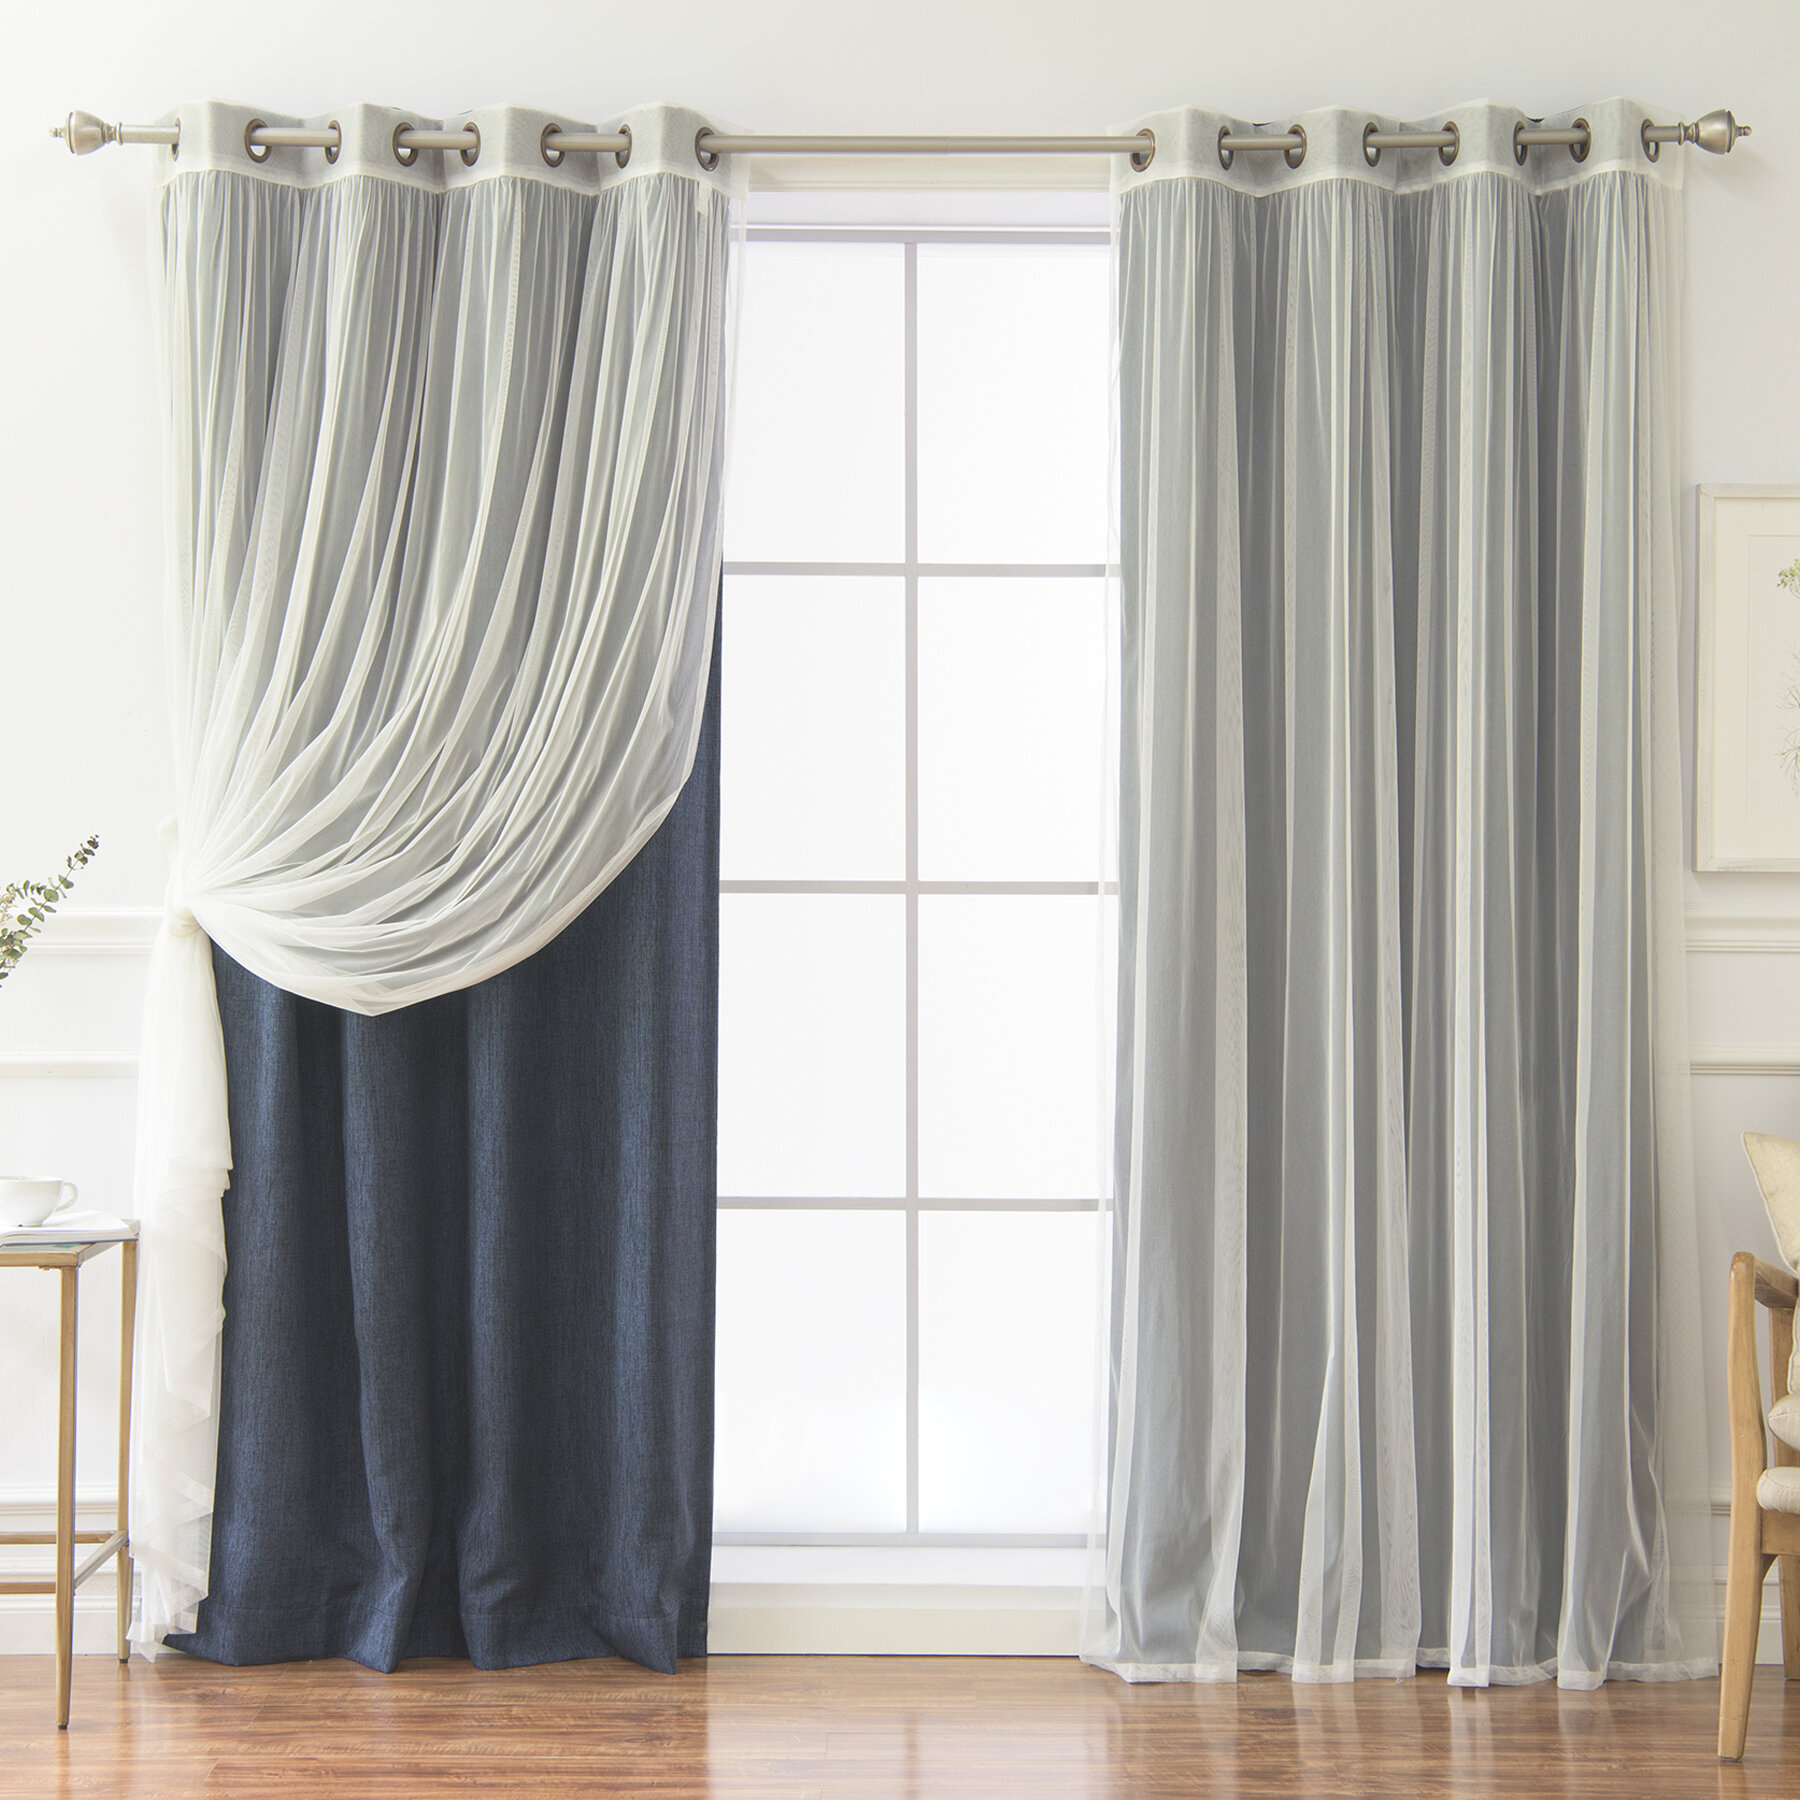 Vestal Tulle And Heathered Solid Blackout Thermal Grommet Curtain Panels pertaining to Mix & Match Blackout Tulle Lace Bronze Grommet Curtain Panel Sets (Image 19 of 20)